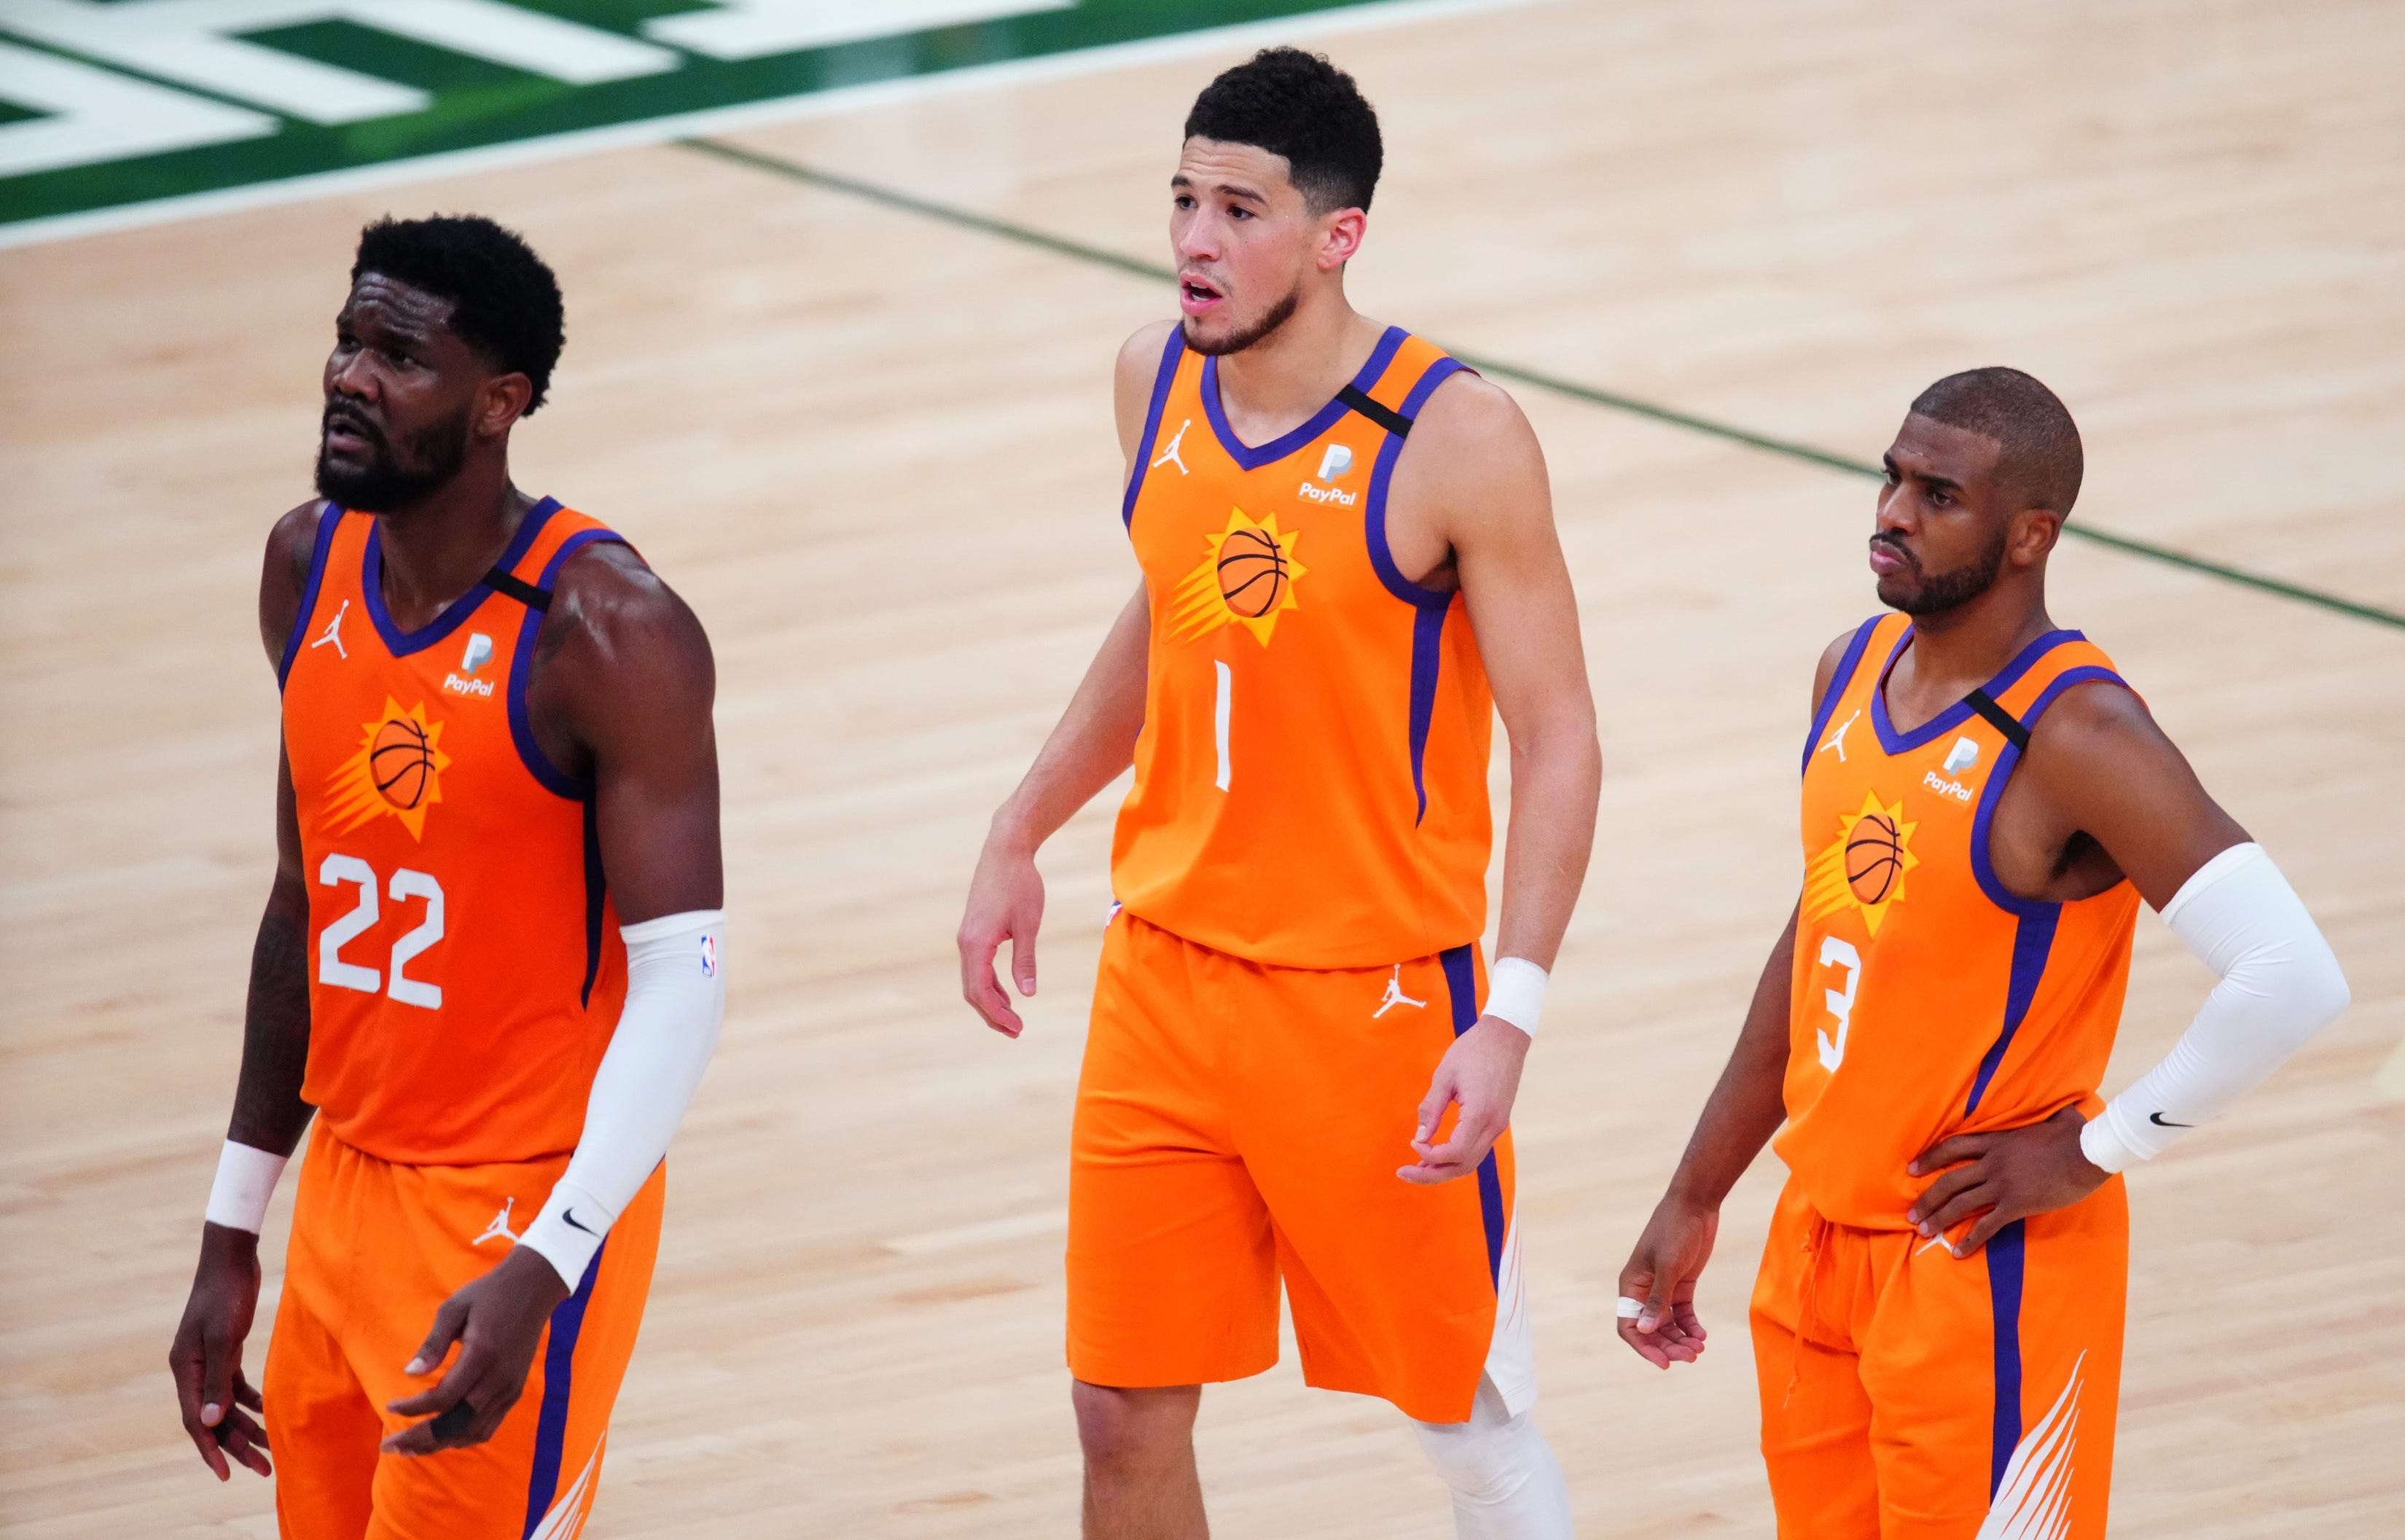 Can Suns remain an NBA title contender? 'This is just the beginning'